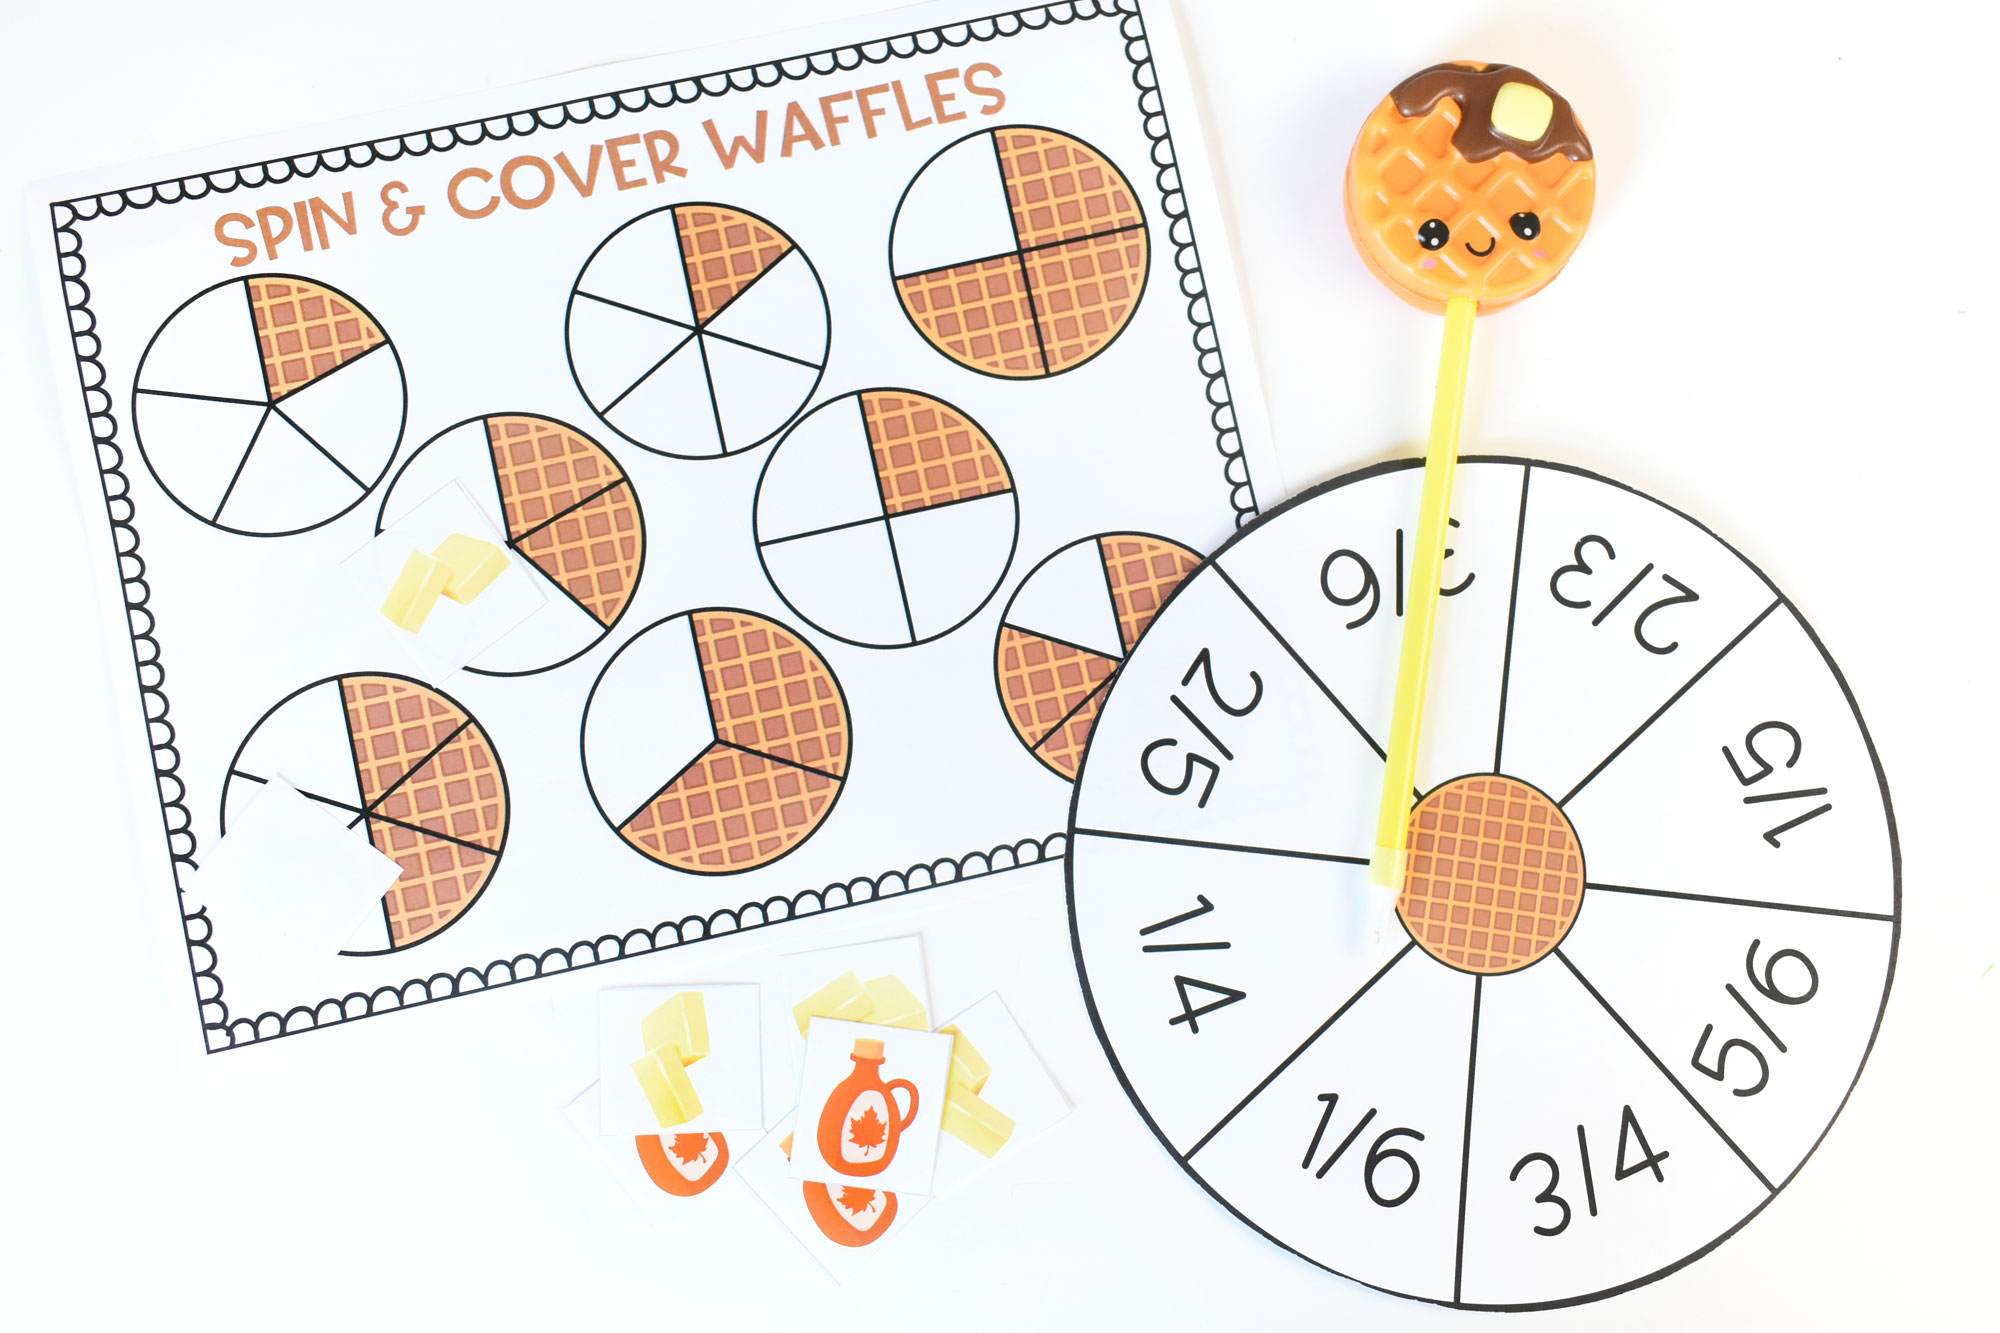 Spin and Cover Waffle Fractions | HolidayPrintables.net #fractions #math #printables #mathprintable #waffleday #homeschool #homeschoolprintables #homeschoolmoms #educationprintables #weloveprintables #holidayprintables